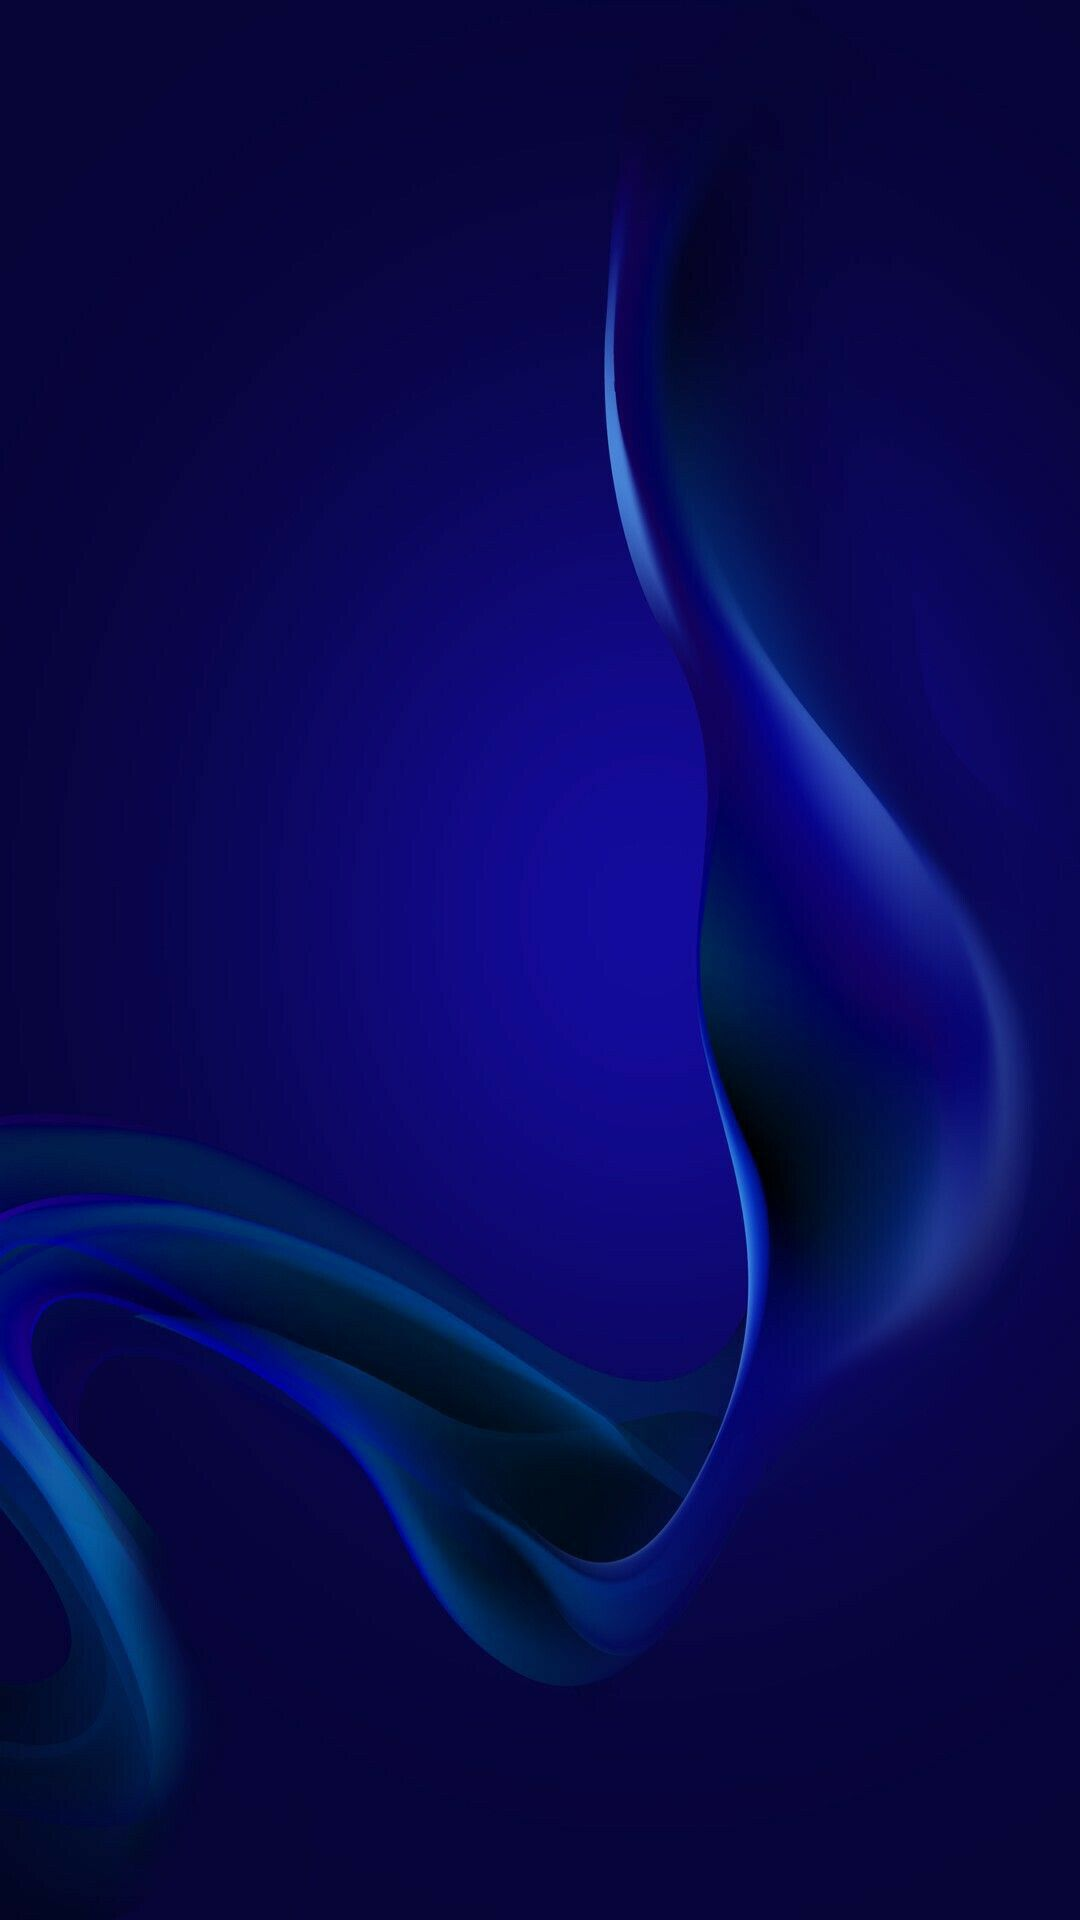 Wallpaper Of Vivid Blue Backgrounds Hd Phone Wallpapers Royal Blue Wallpaper Blue Wallpapers